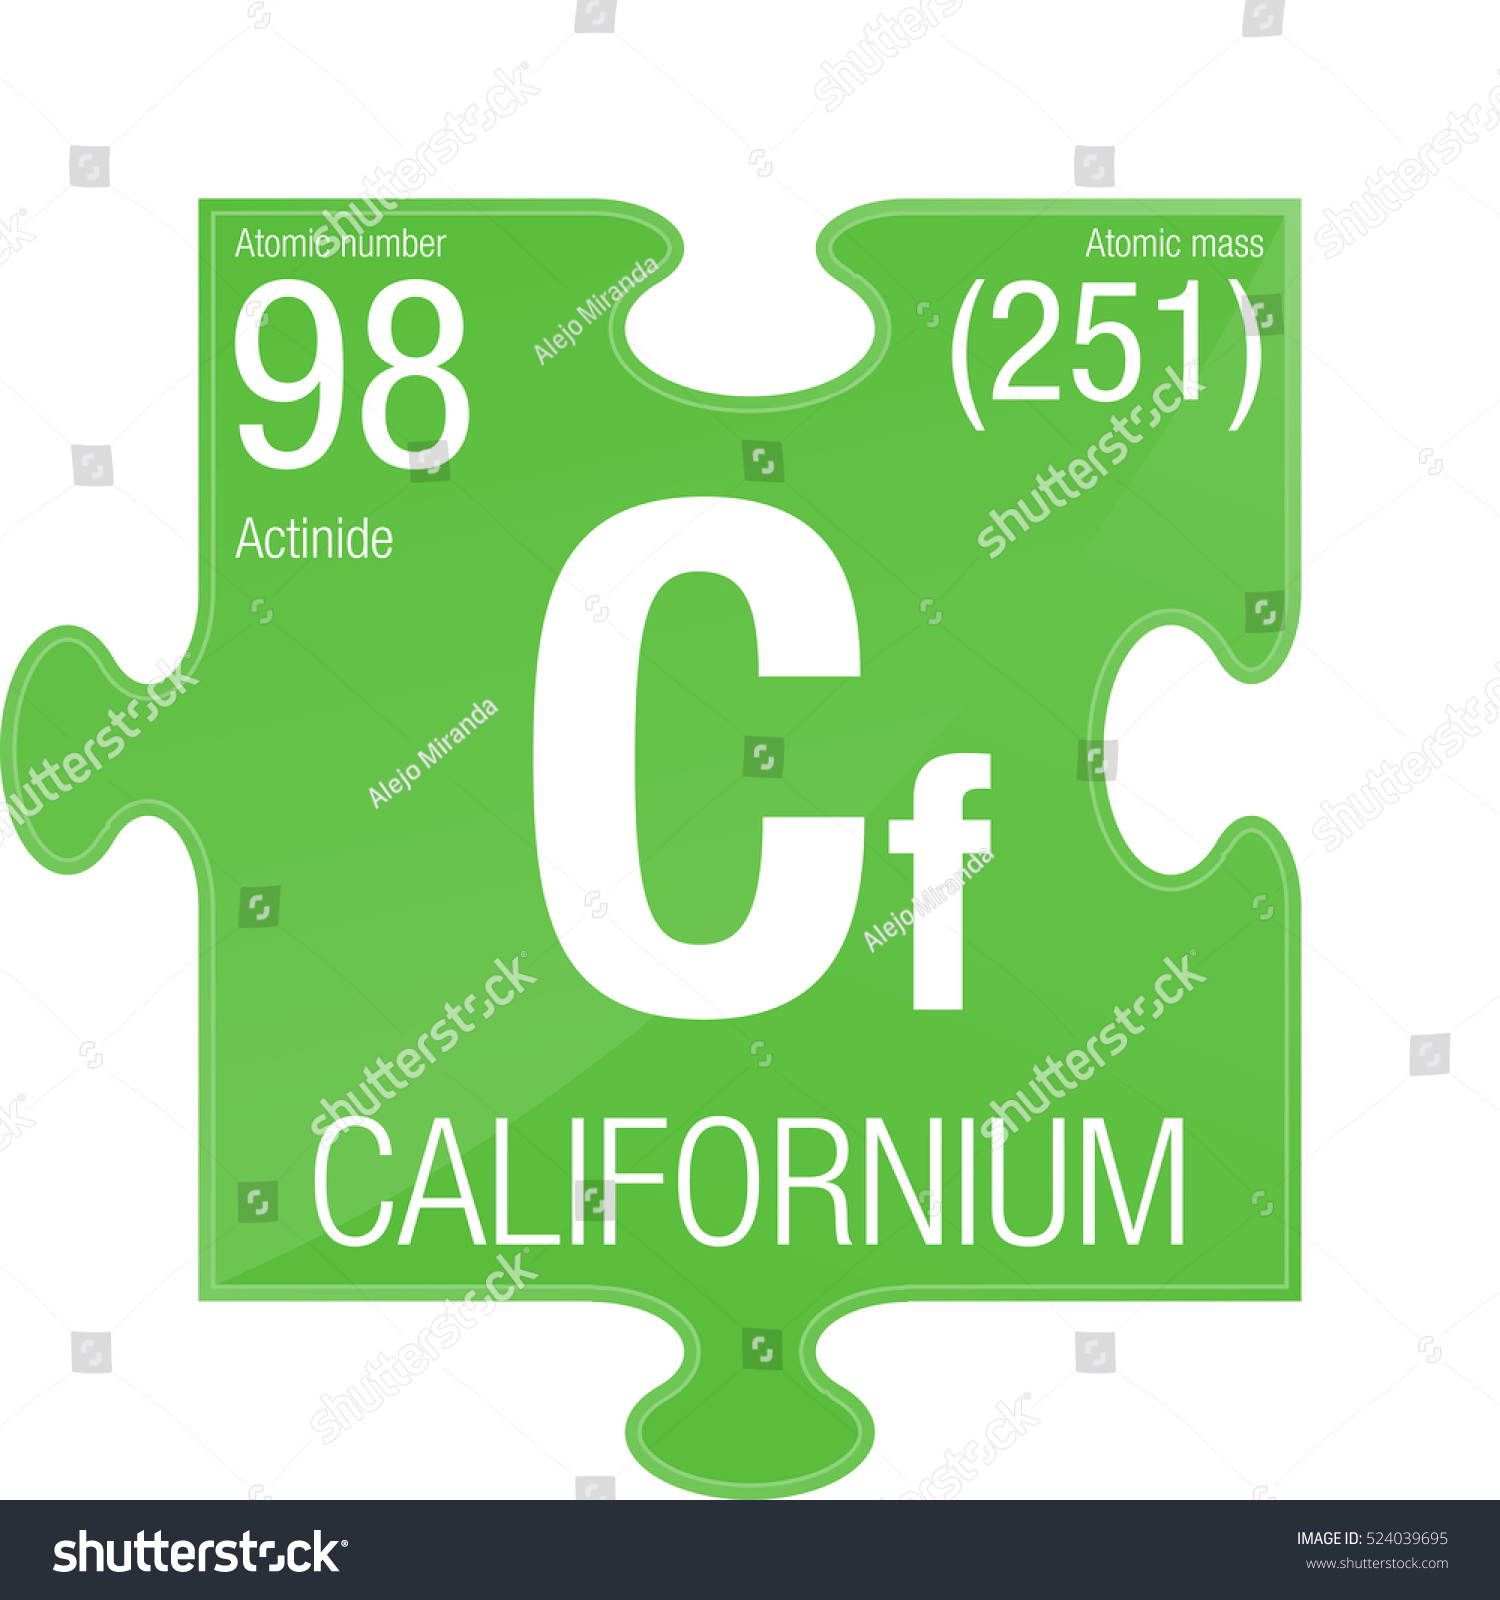 Periodic table symbol for salt image collections periodic table salt symbol periodic table choice image periodic table images periodic table californium gallery periodic table images gamestrikefo Image collections